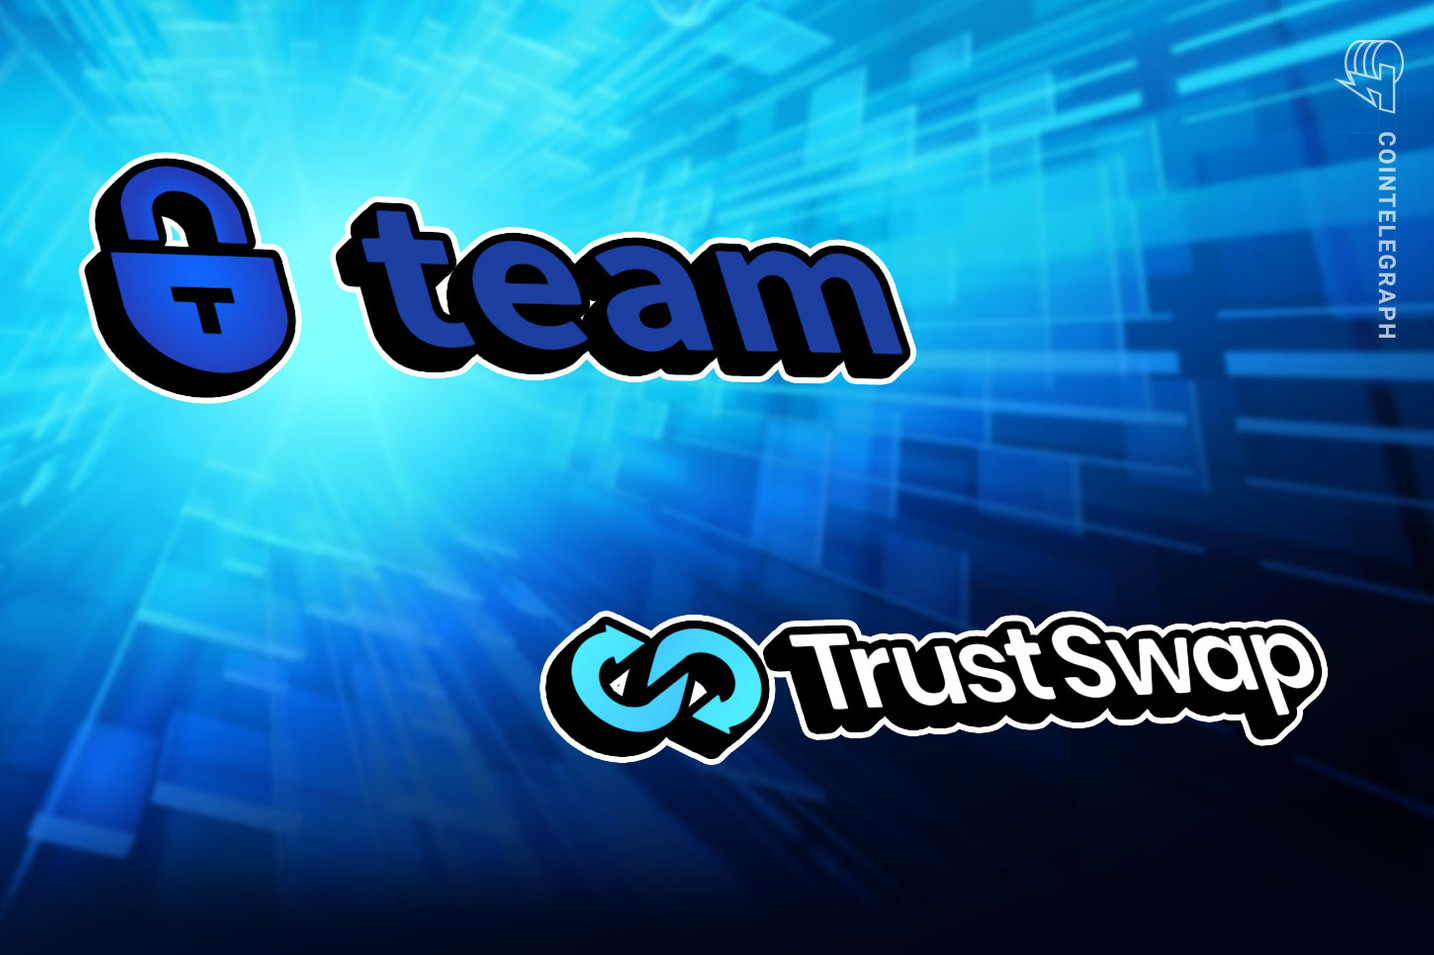 TrustSwap acquires Team.Finance, cements position as market leader